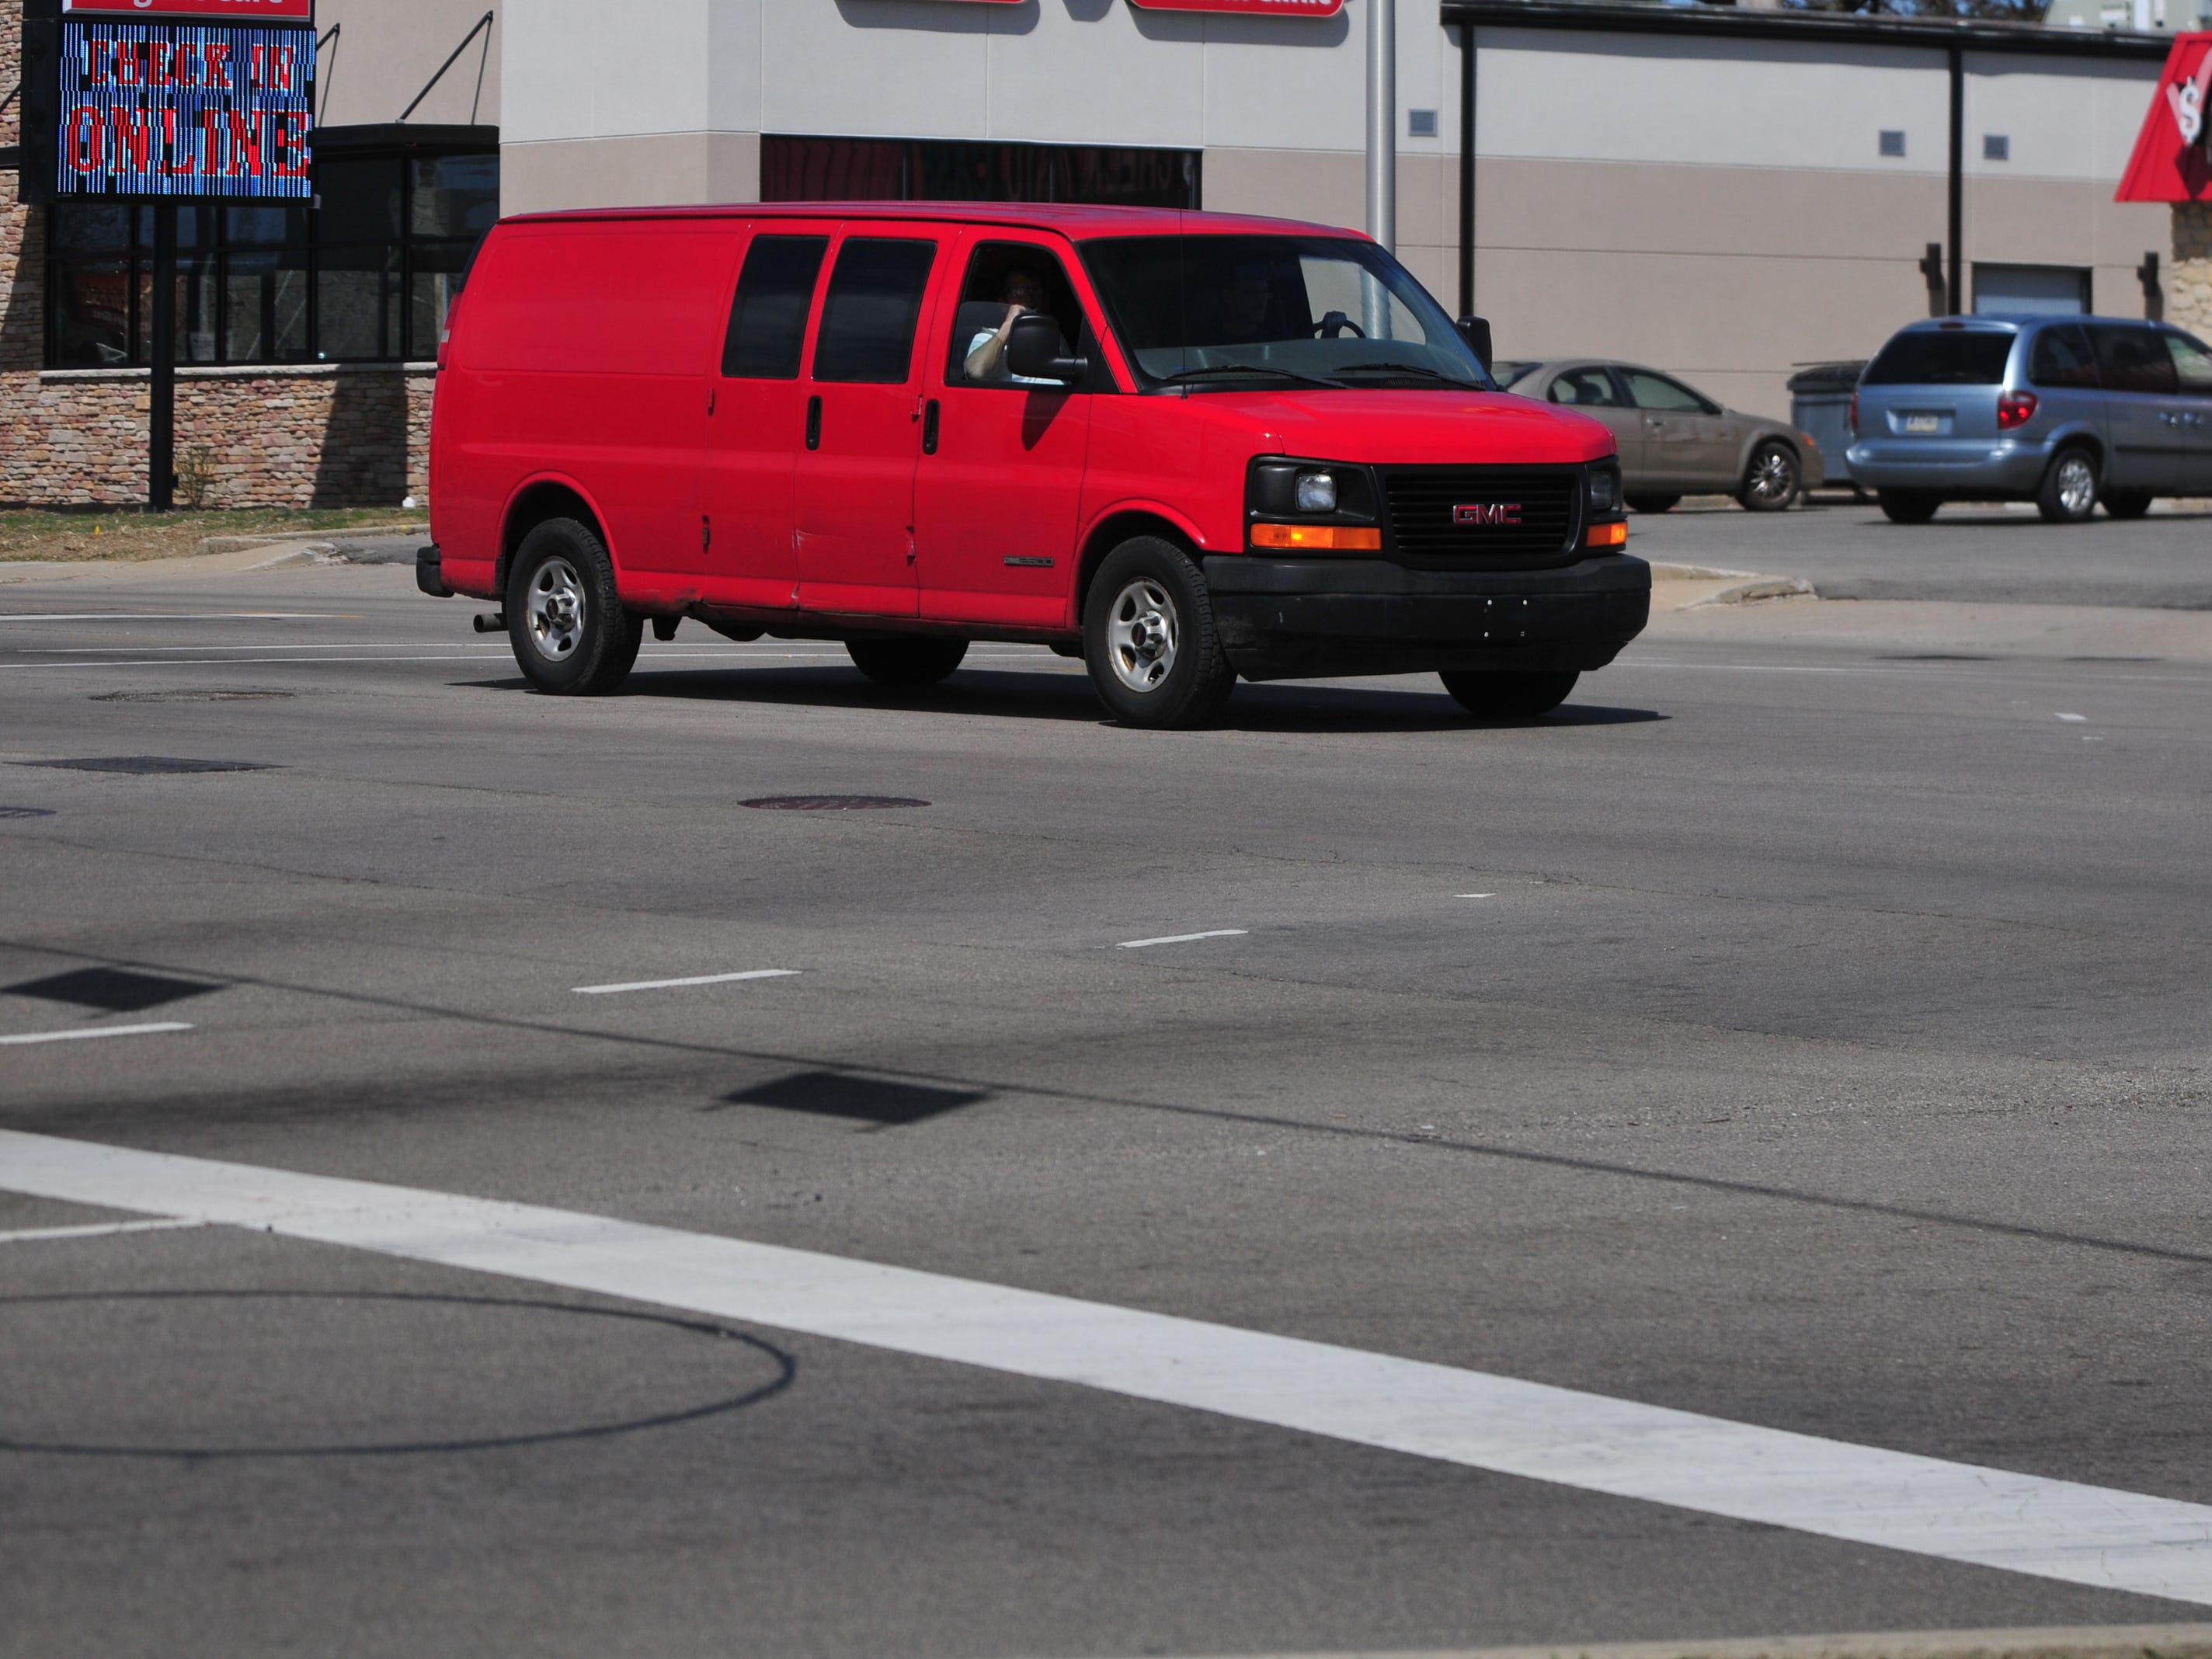 A dotted line to guide turns from South 37th Street onto westbound East Main Street were added during 2015 in an effort to reduce the number of accidents at the intersection.